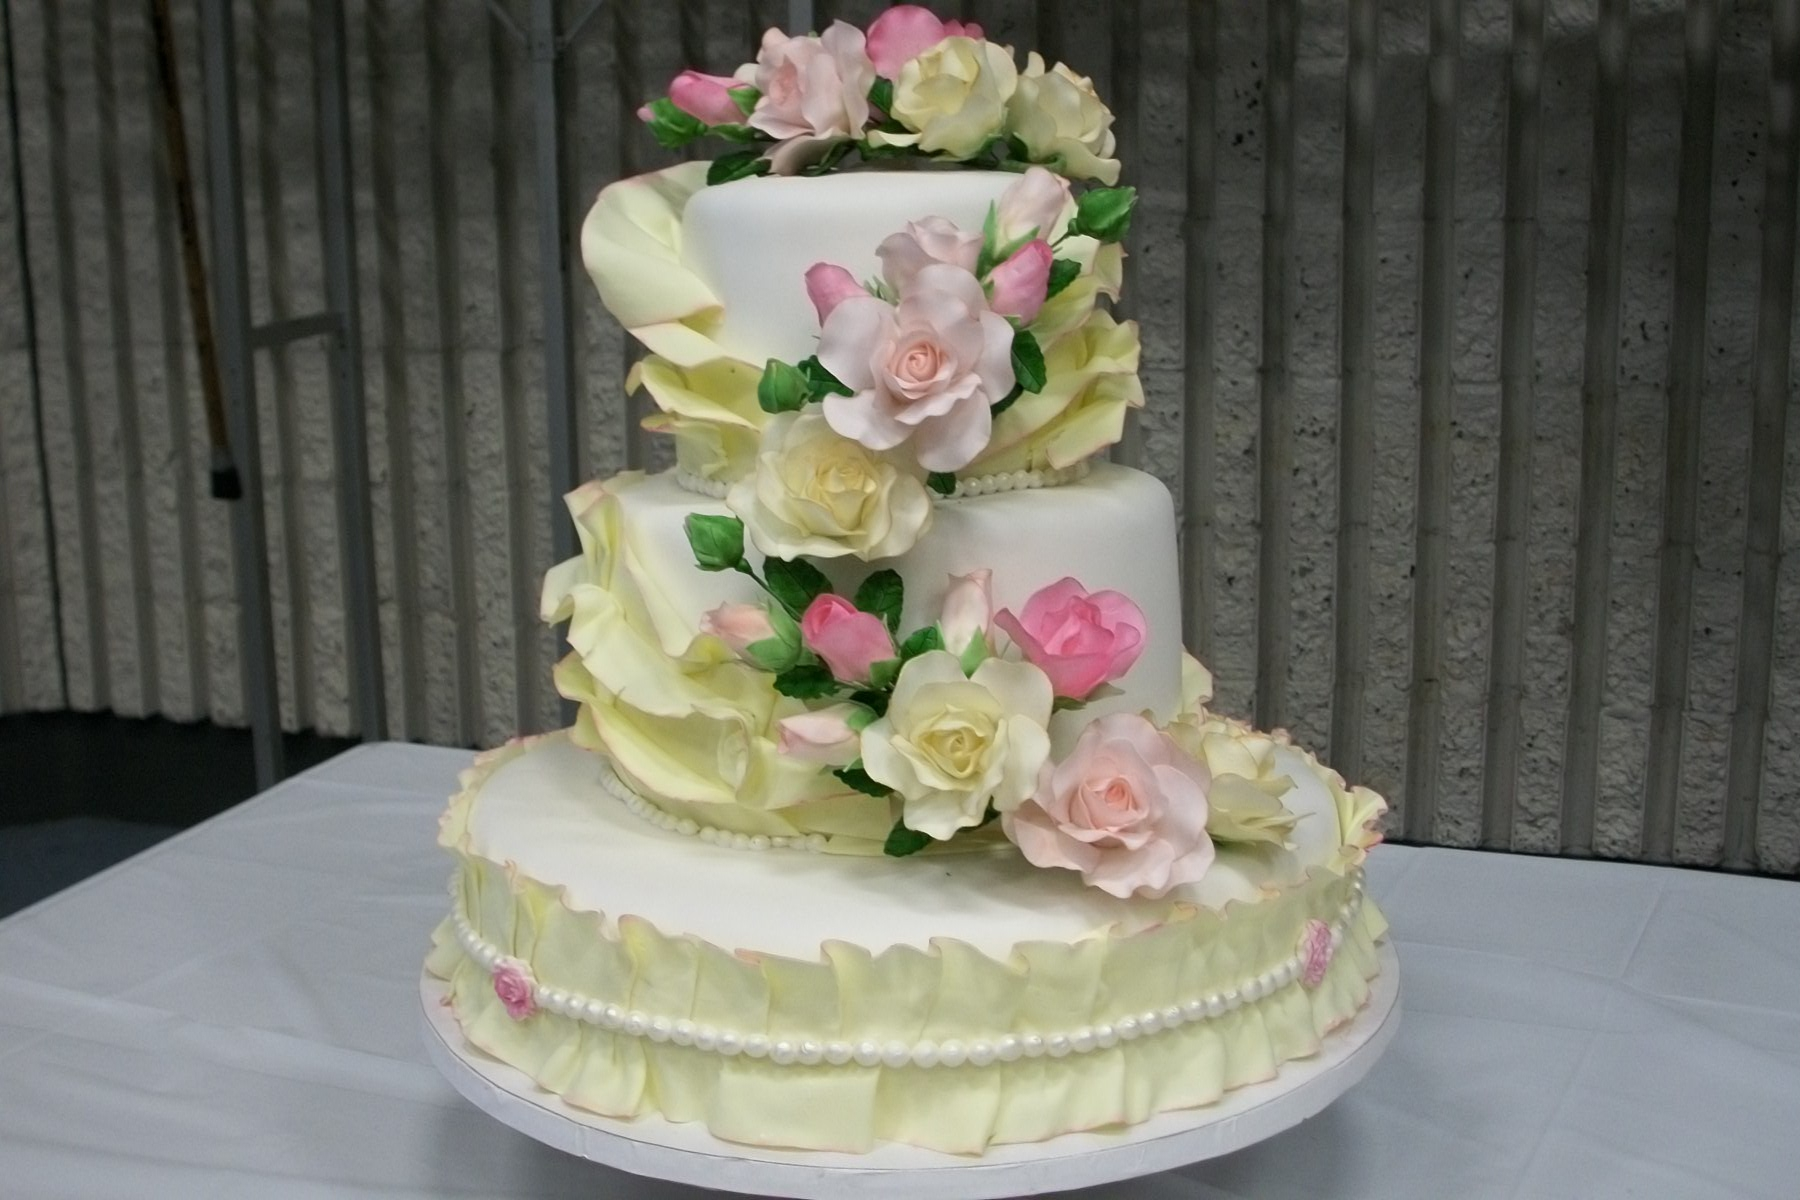 My Very First Wedding Cake Inspiration Was From Artisan Cake Company The Roses Were Made After I Took The Ultimate Sugar Rose Class From My very first wedding cake. Inspiration was from Artisan Cake Company.. The roses were made after I took The Ultimate Sugar Rose class from...